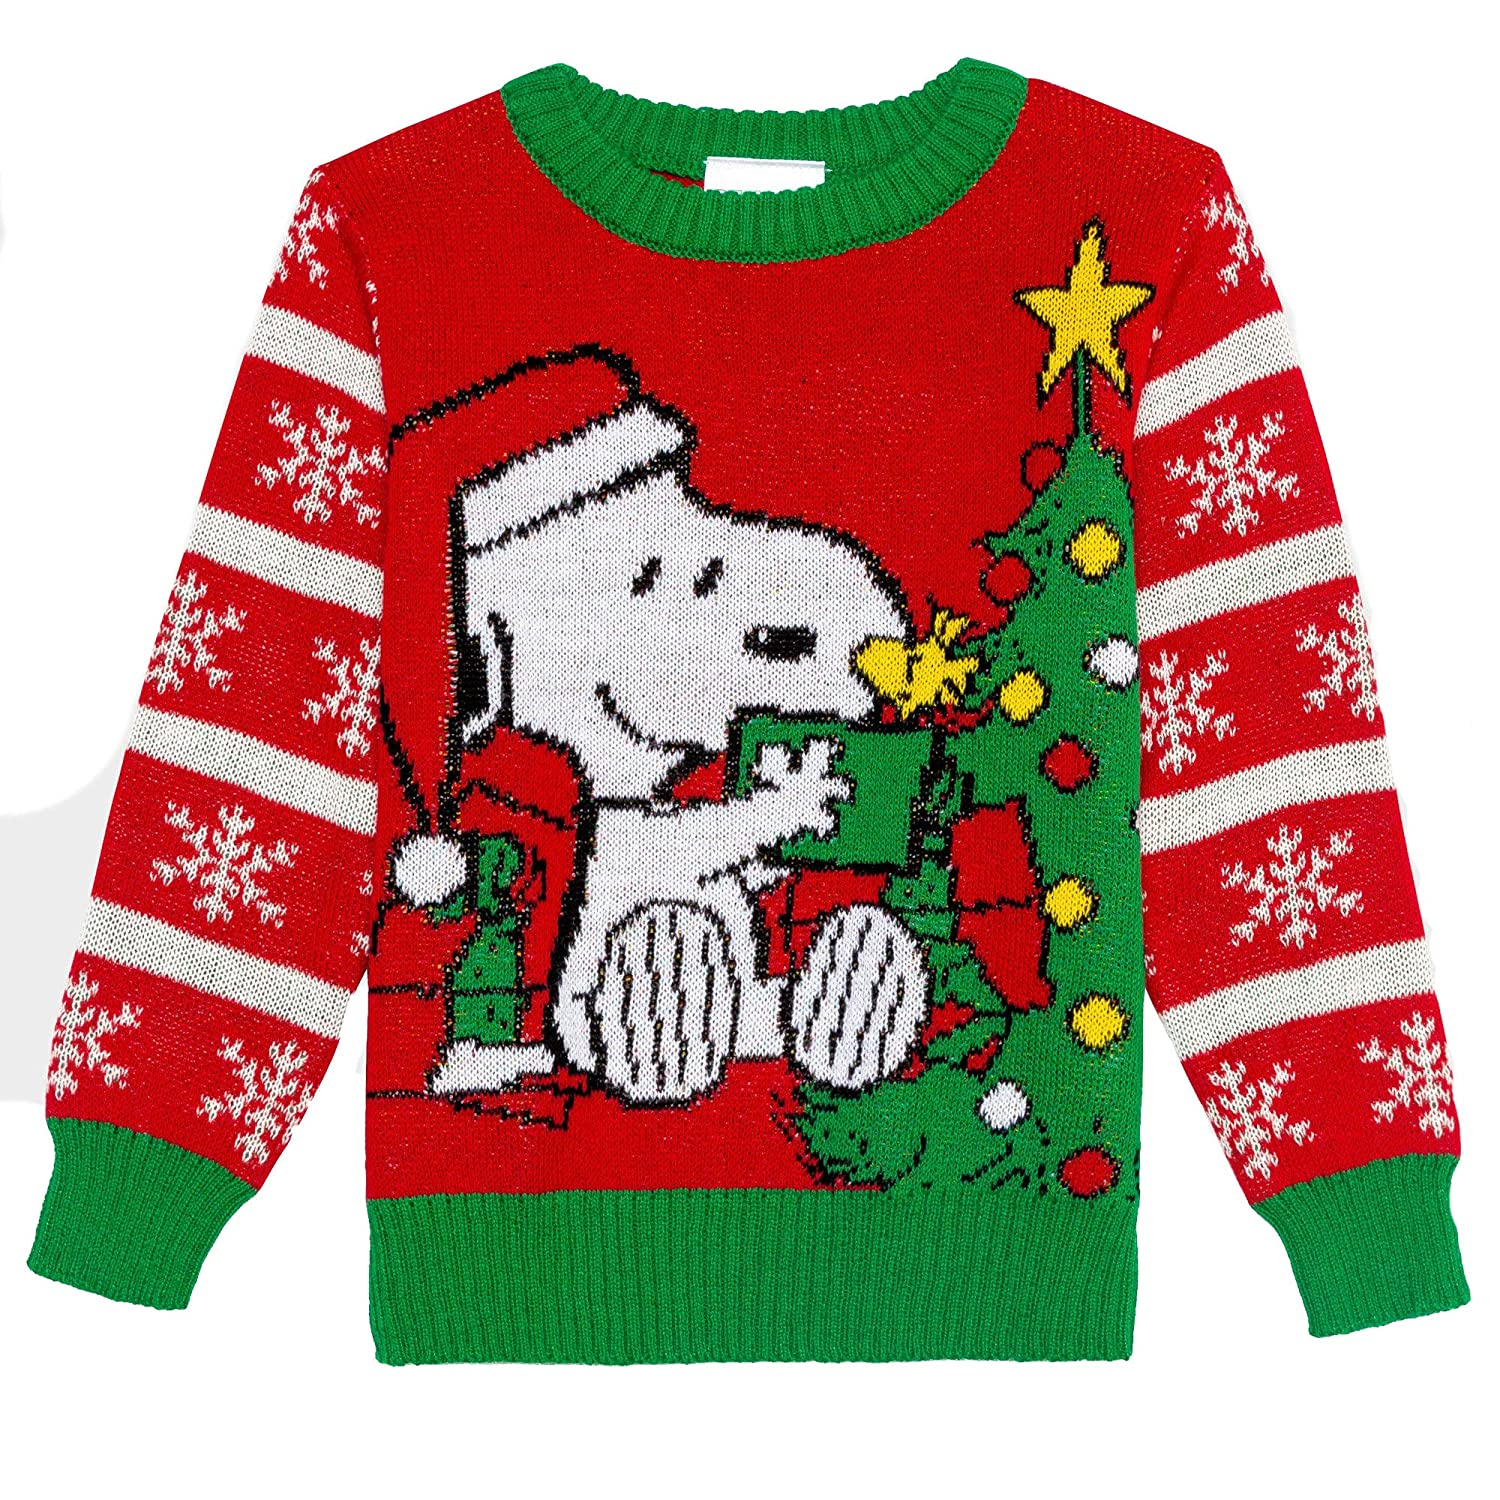 Peanuts Snoopy and Woodstock Baby Boys Christmas Sweater